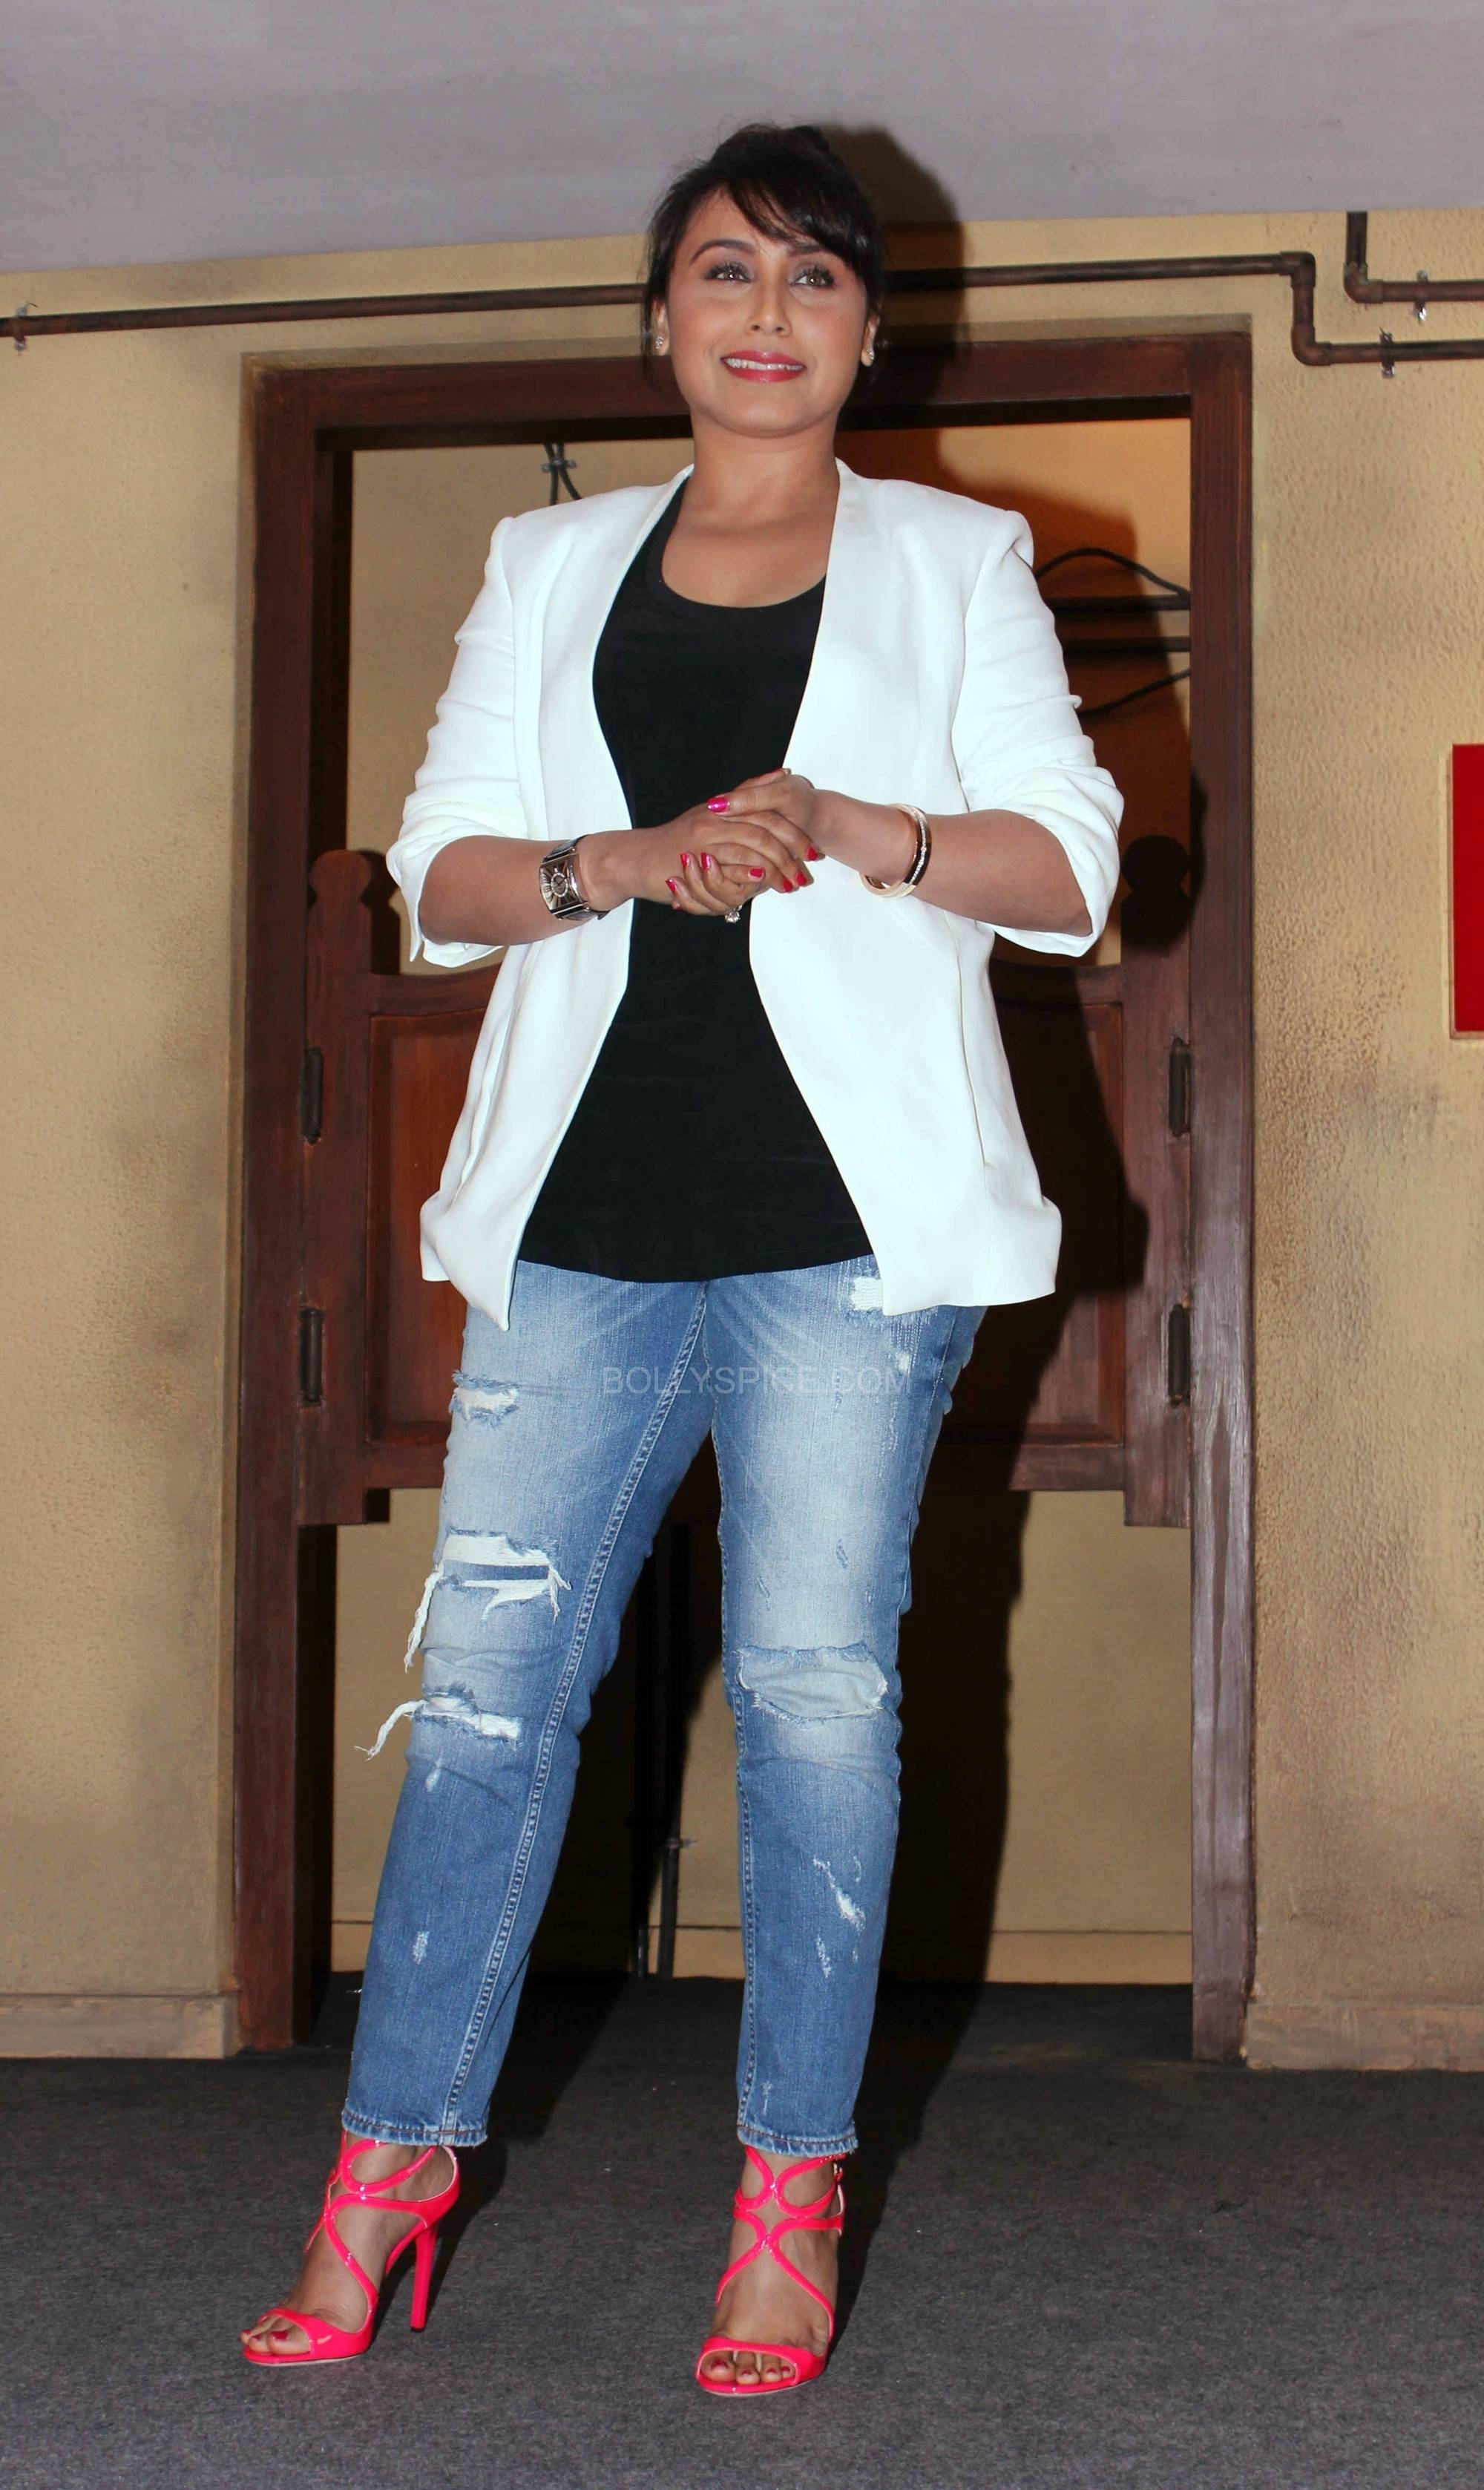 ranimardaanitrailerlaunch2 In Pictures: Rani at Mardaani Trailer Launch